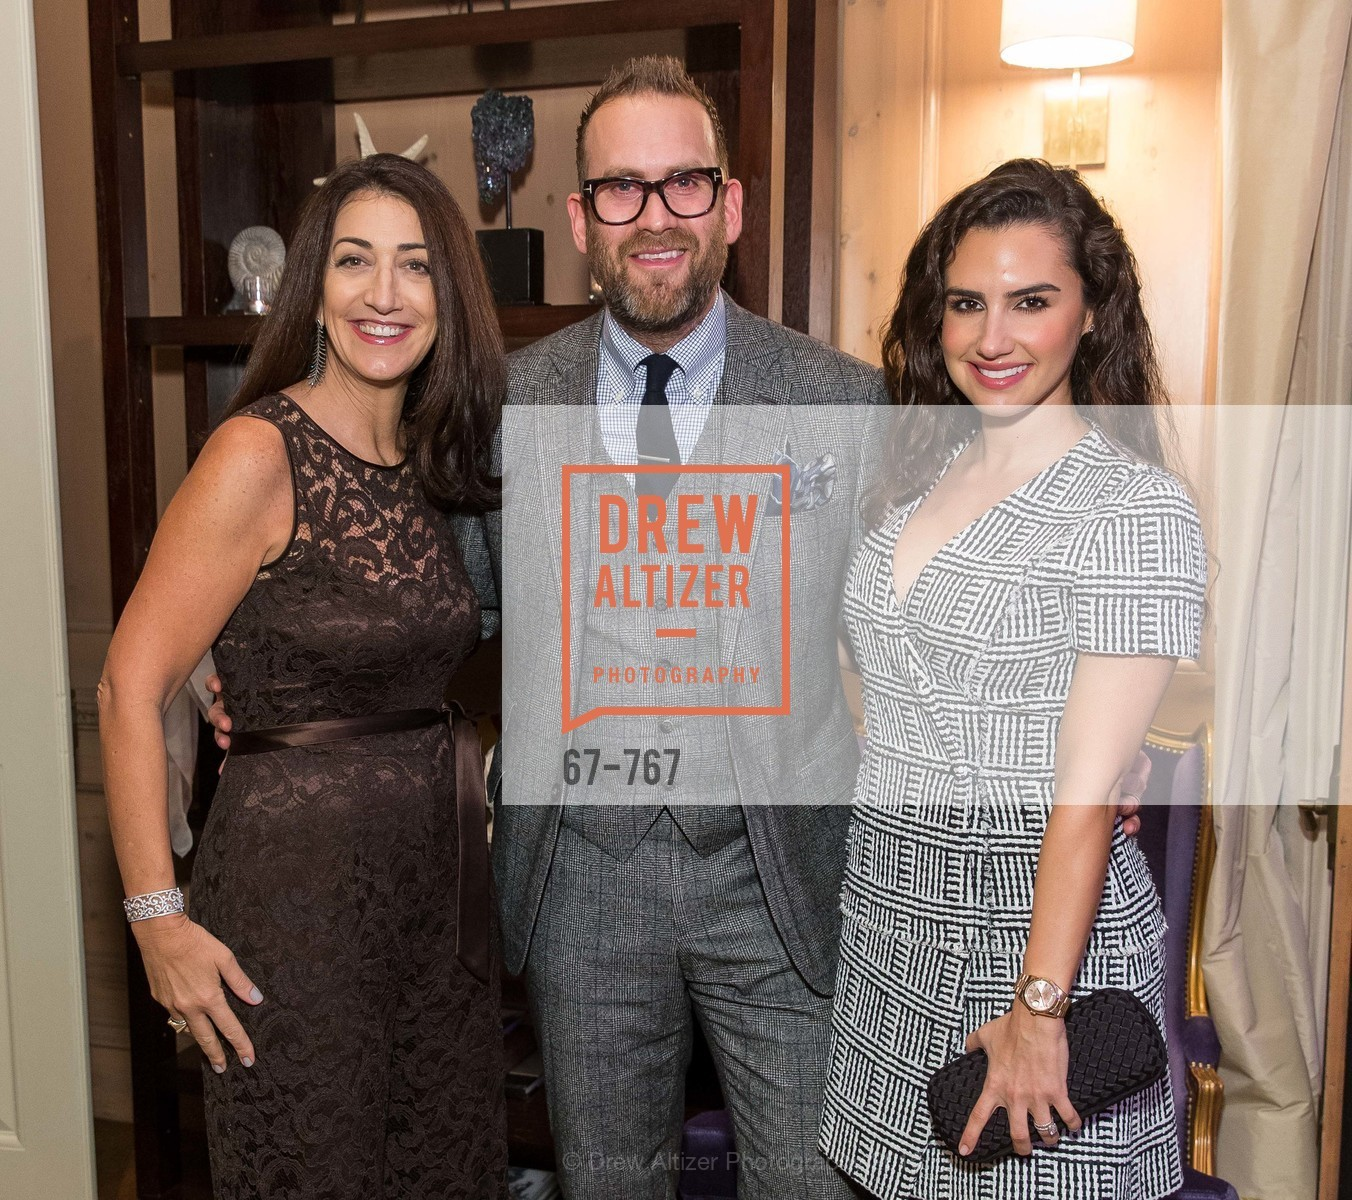 Pam Baer, Tyler Mitchell, Stephanie Mitchell, A Special Reception with Tony Bennett, The Fairmont, San Francisco, The Penthouse Suite, January 26th, 2016,Drew Altizer, Drew Altizer Photography, full-service agency, private events, San Francisco photographer, photographer california